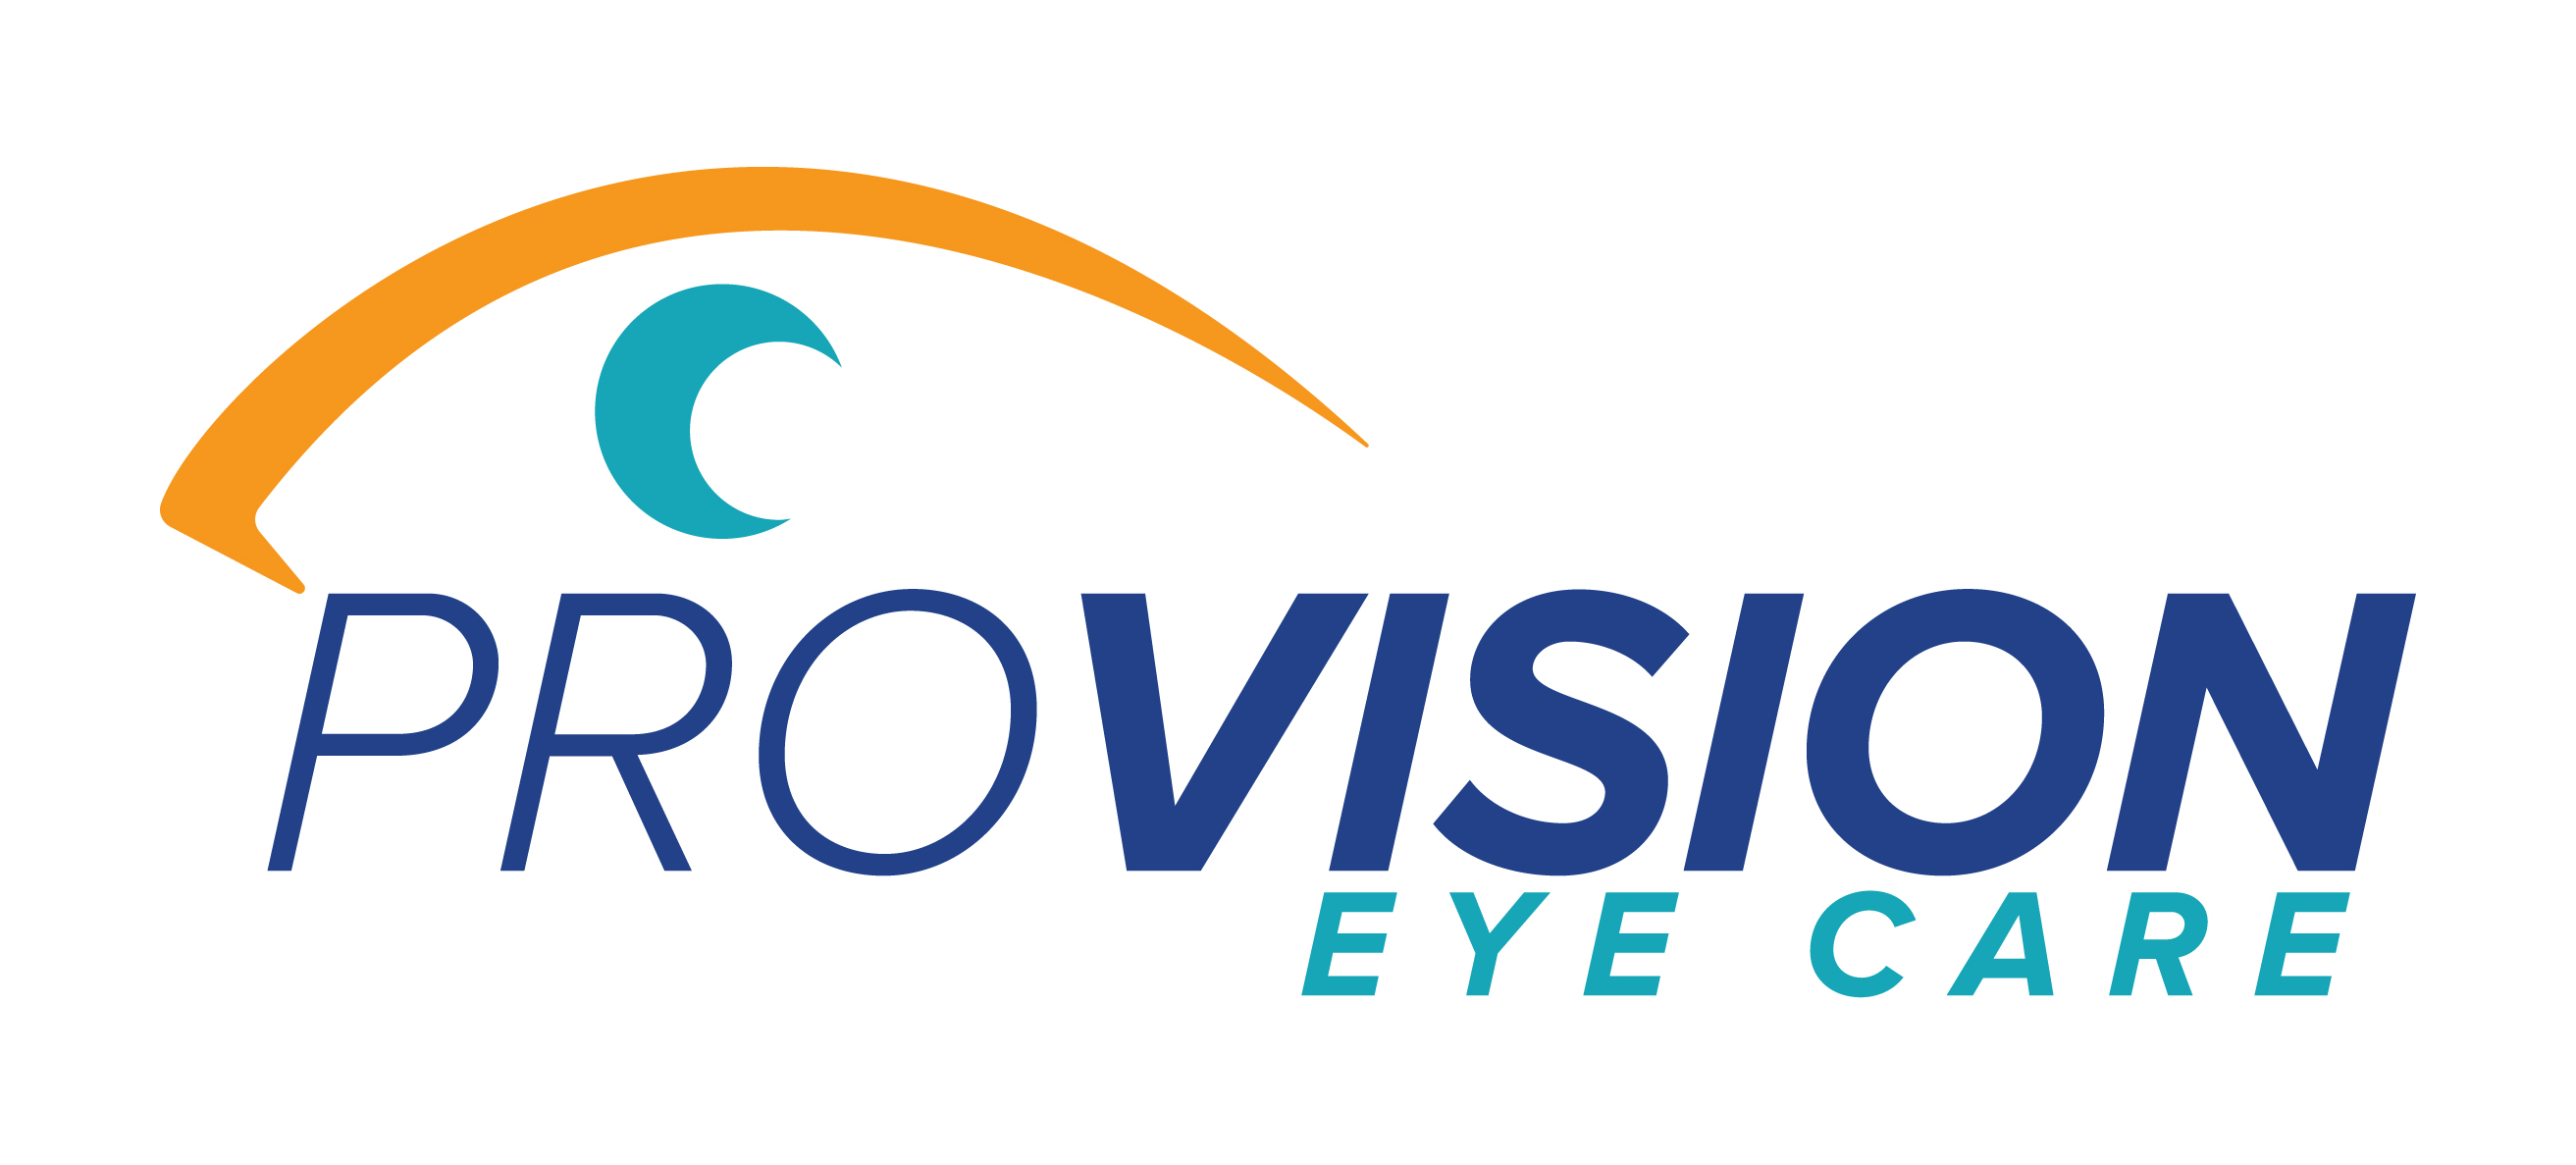 Provision Eye Care, LLC Logo